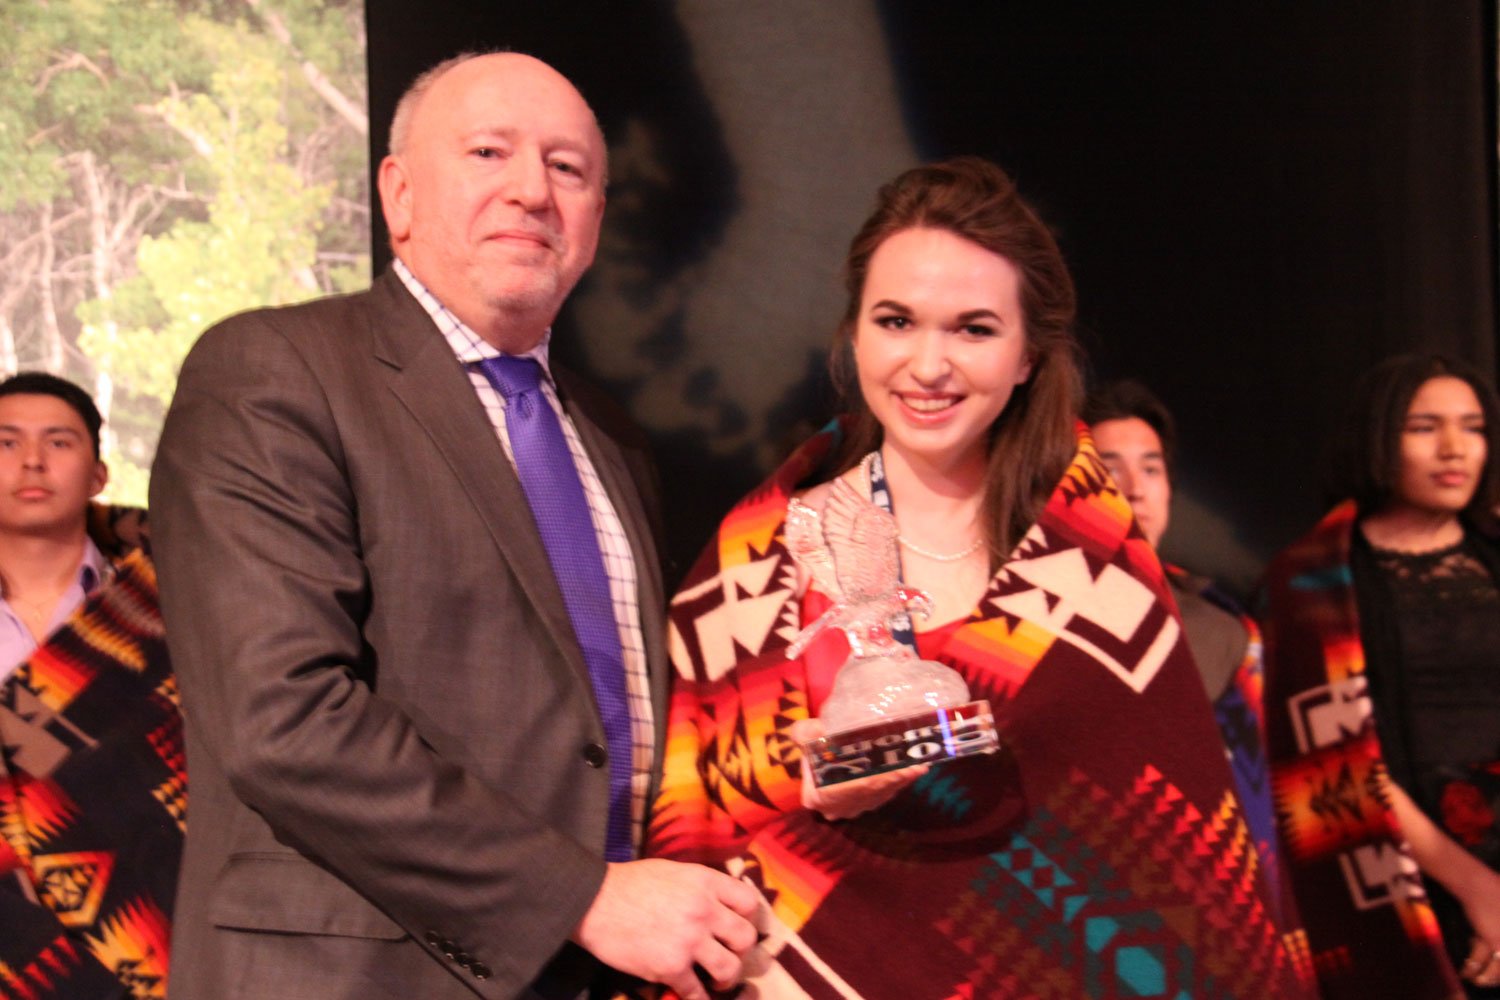 Ron Styles of SaskTel presented the Female Outstanding Achievement award to Sidney Shacter